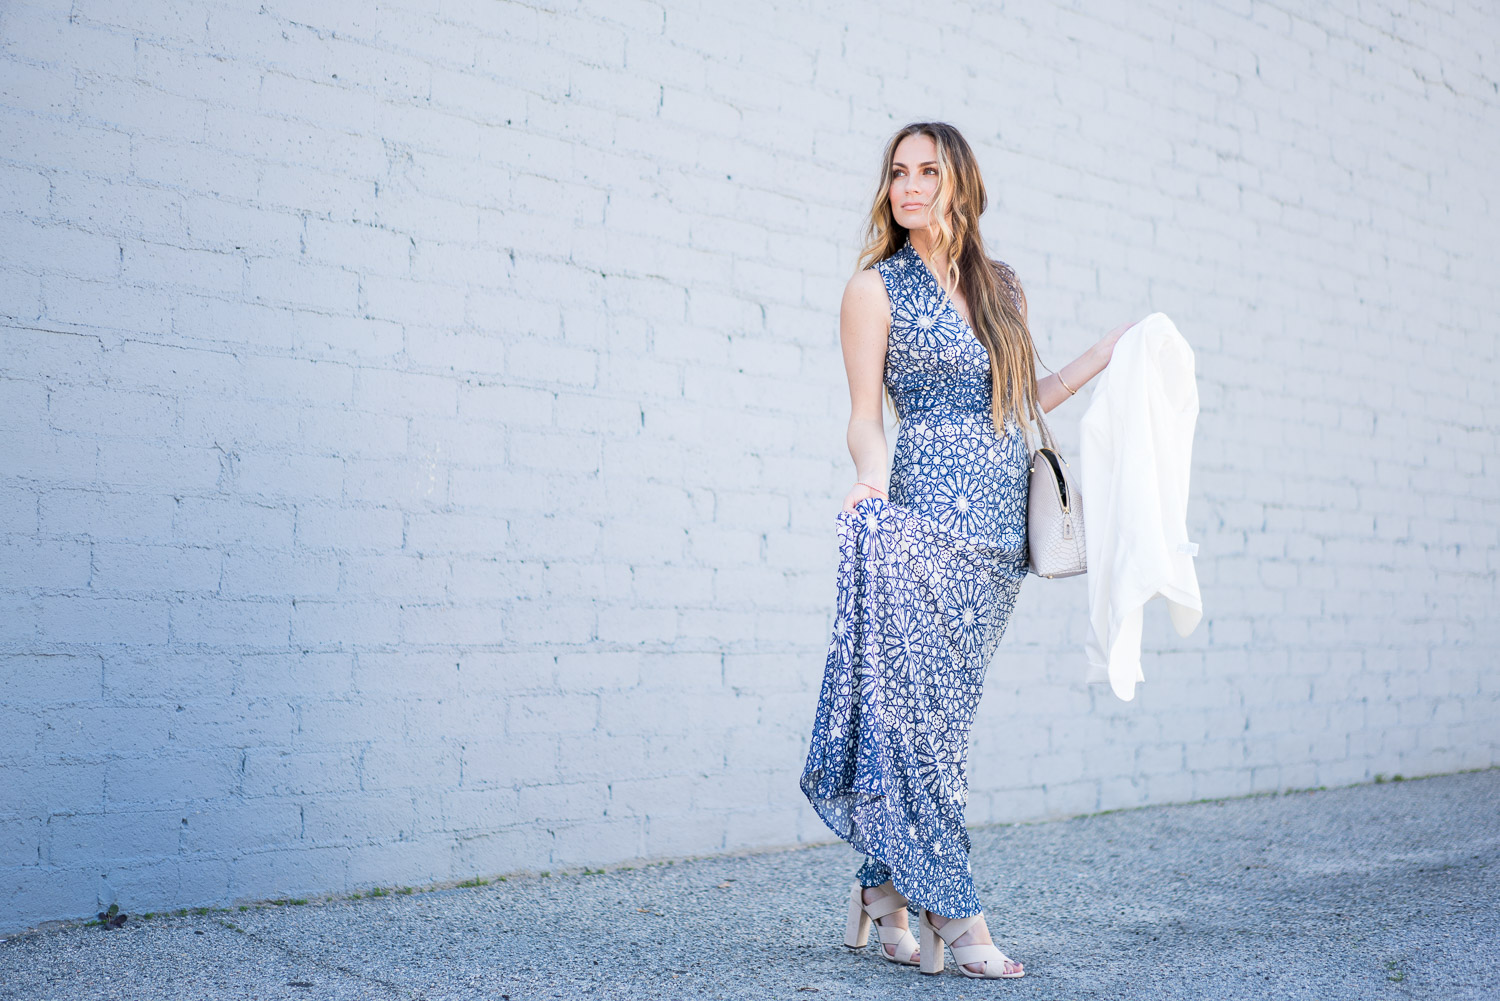 Forever 21 Maxi Dress, Nude Heels, White Blazer and Henri Bendel Handbag